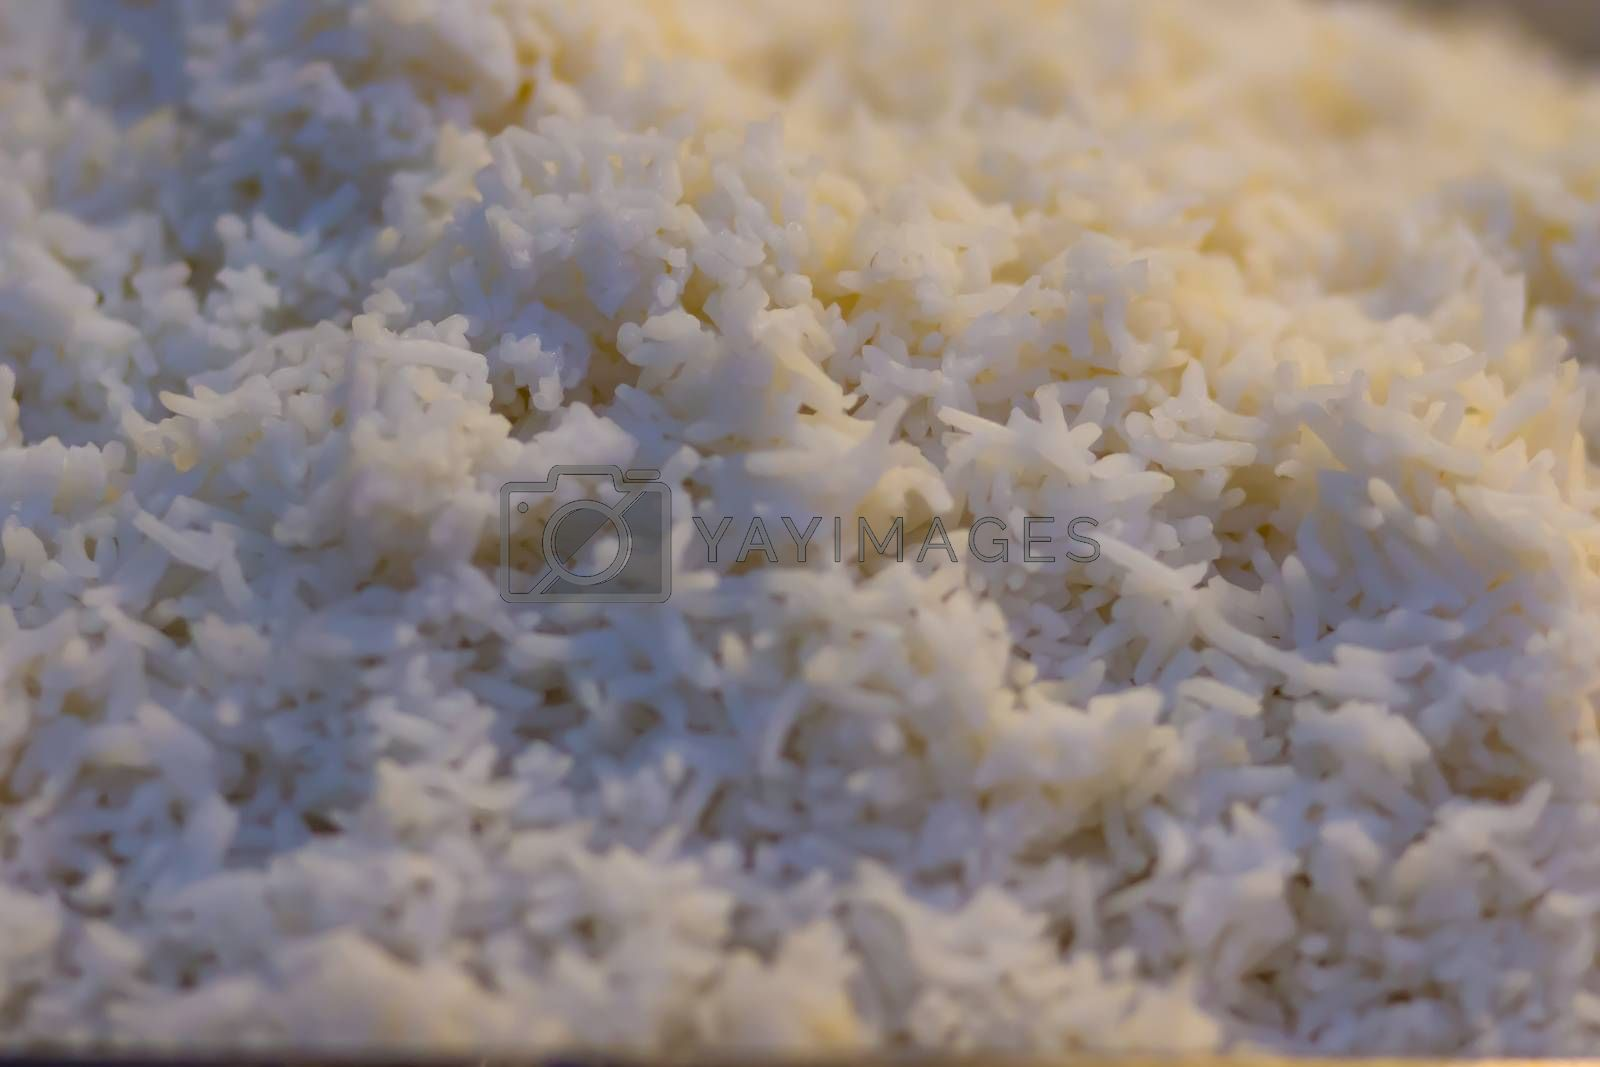 Cooked thai jasmine rice background. Jasmine rice or Khao hom mali also known as aromatic rice that grown primarily in Thailand (Thai hom mali or Thai fragrant rice)